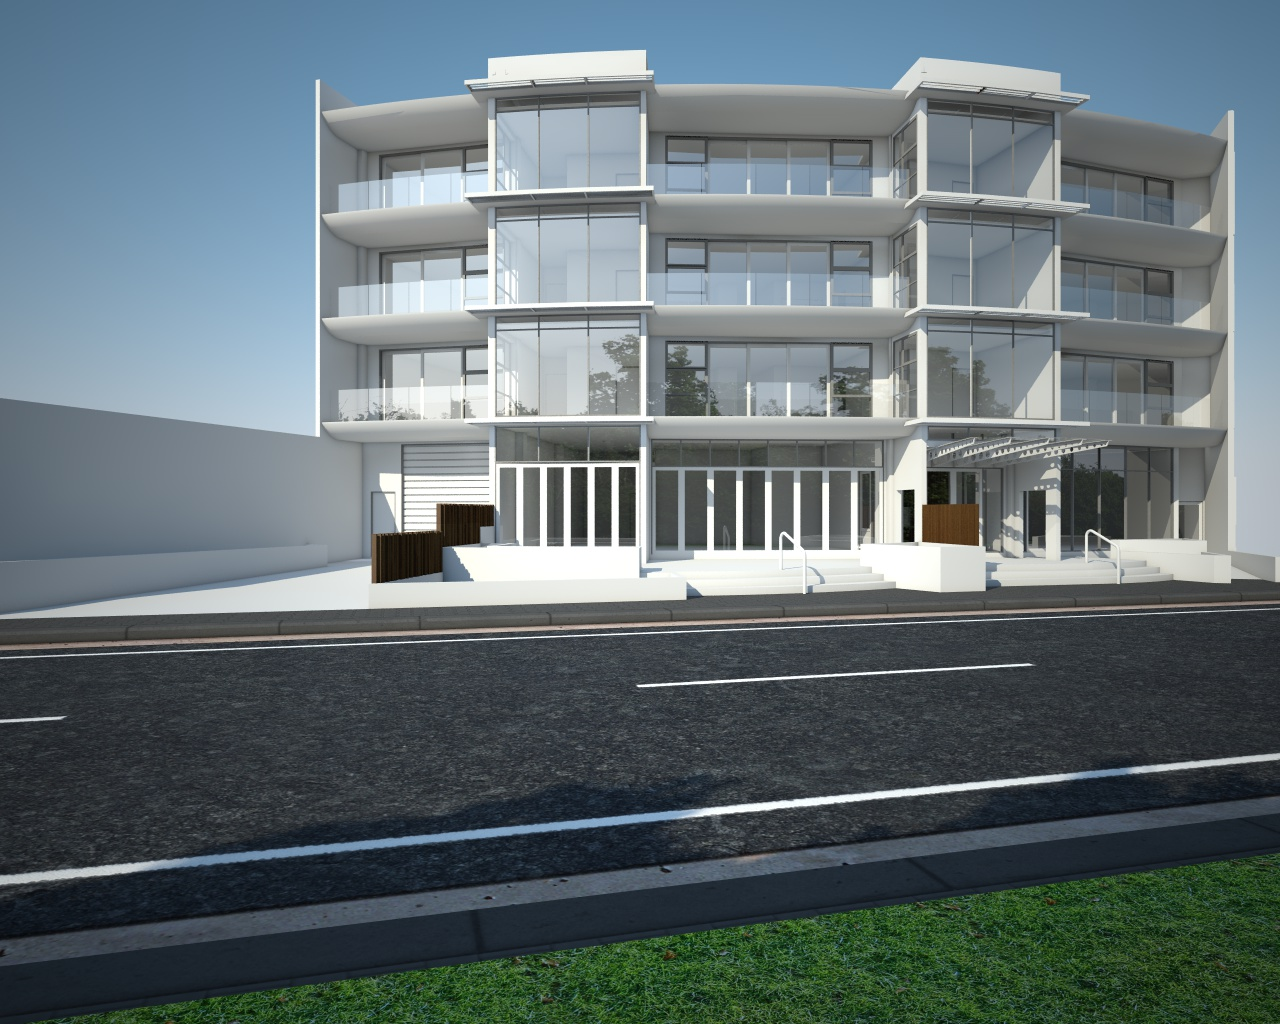 Beachcroft apartments property development cba design ltd for Apartment design and development ltd